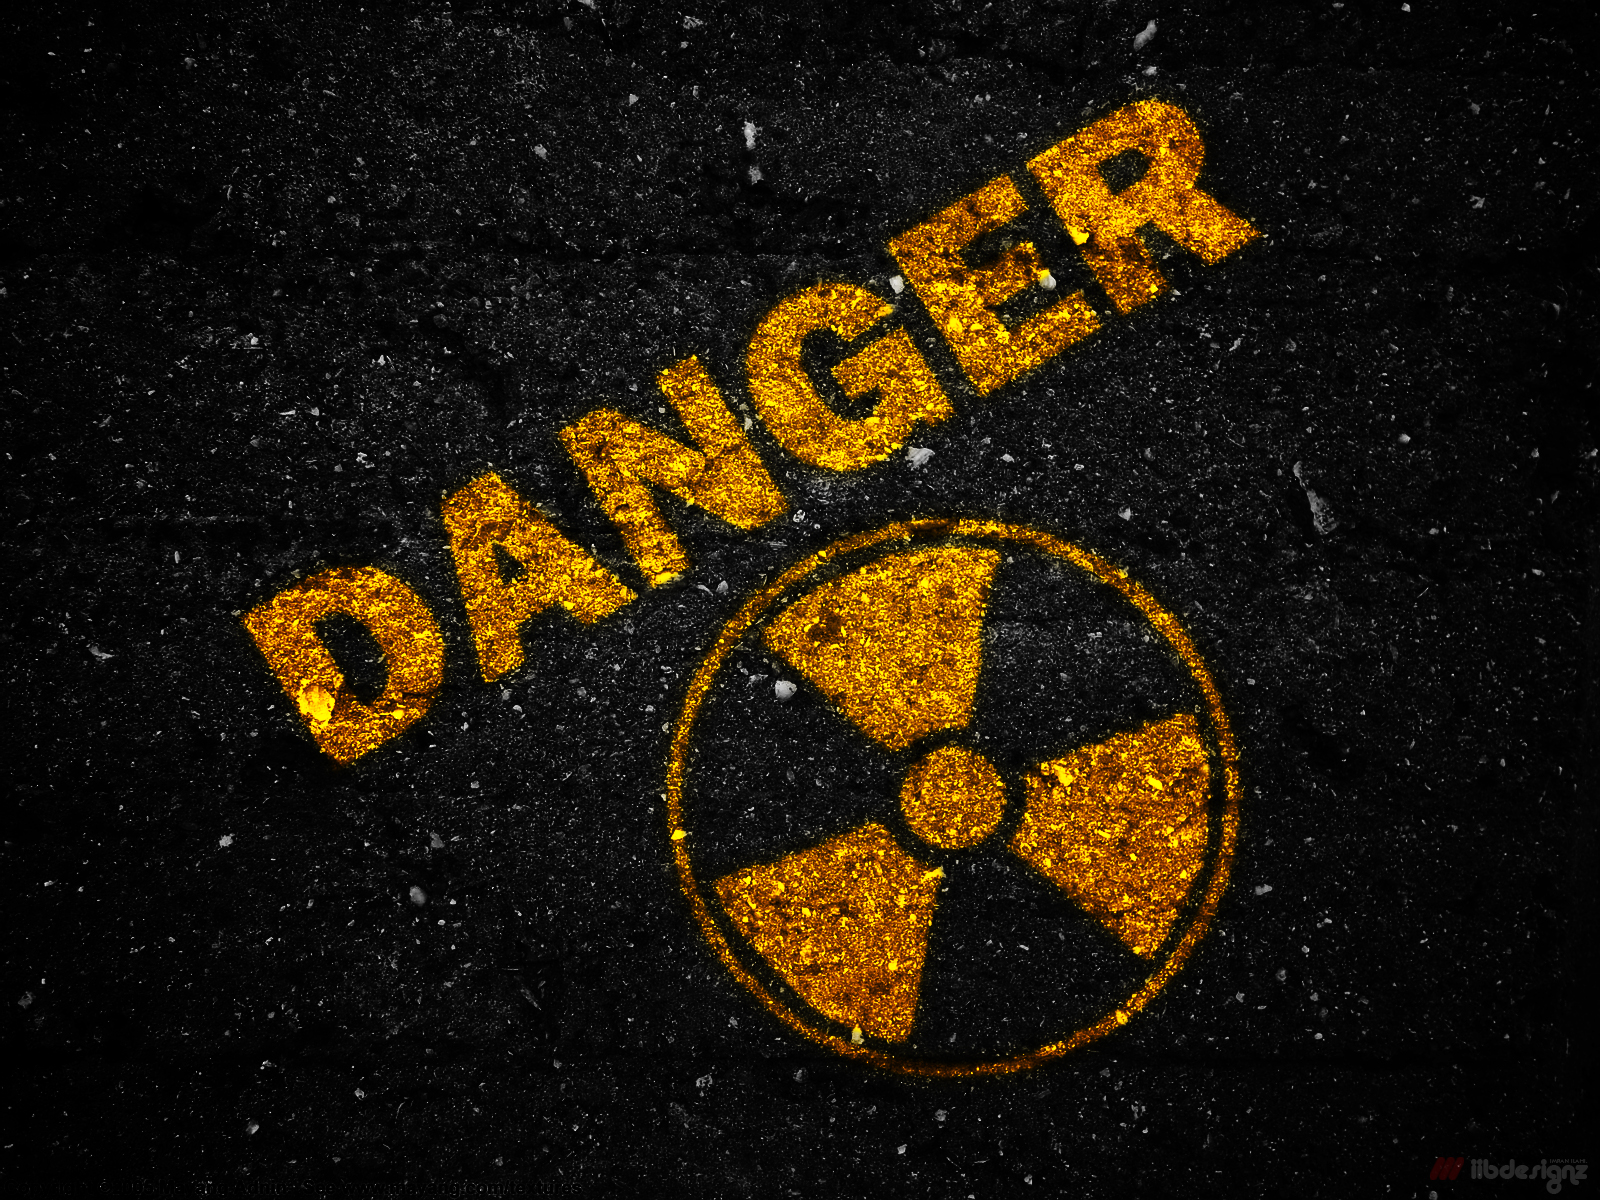 Danger Pictures Wallpapers For Wall   All Images Wallpapers For Wall 1600x1200